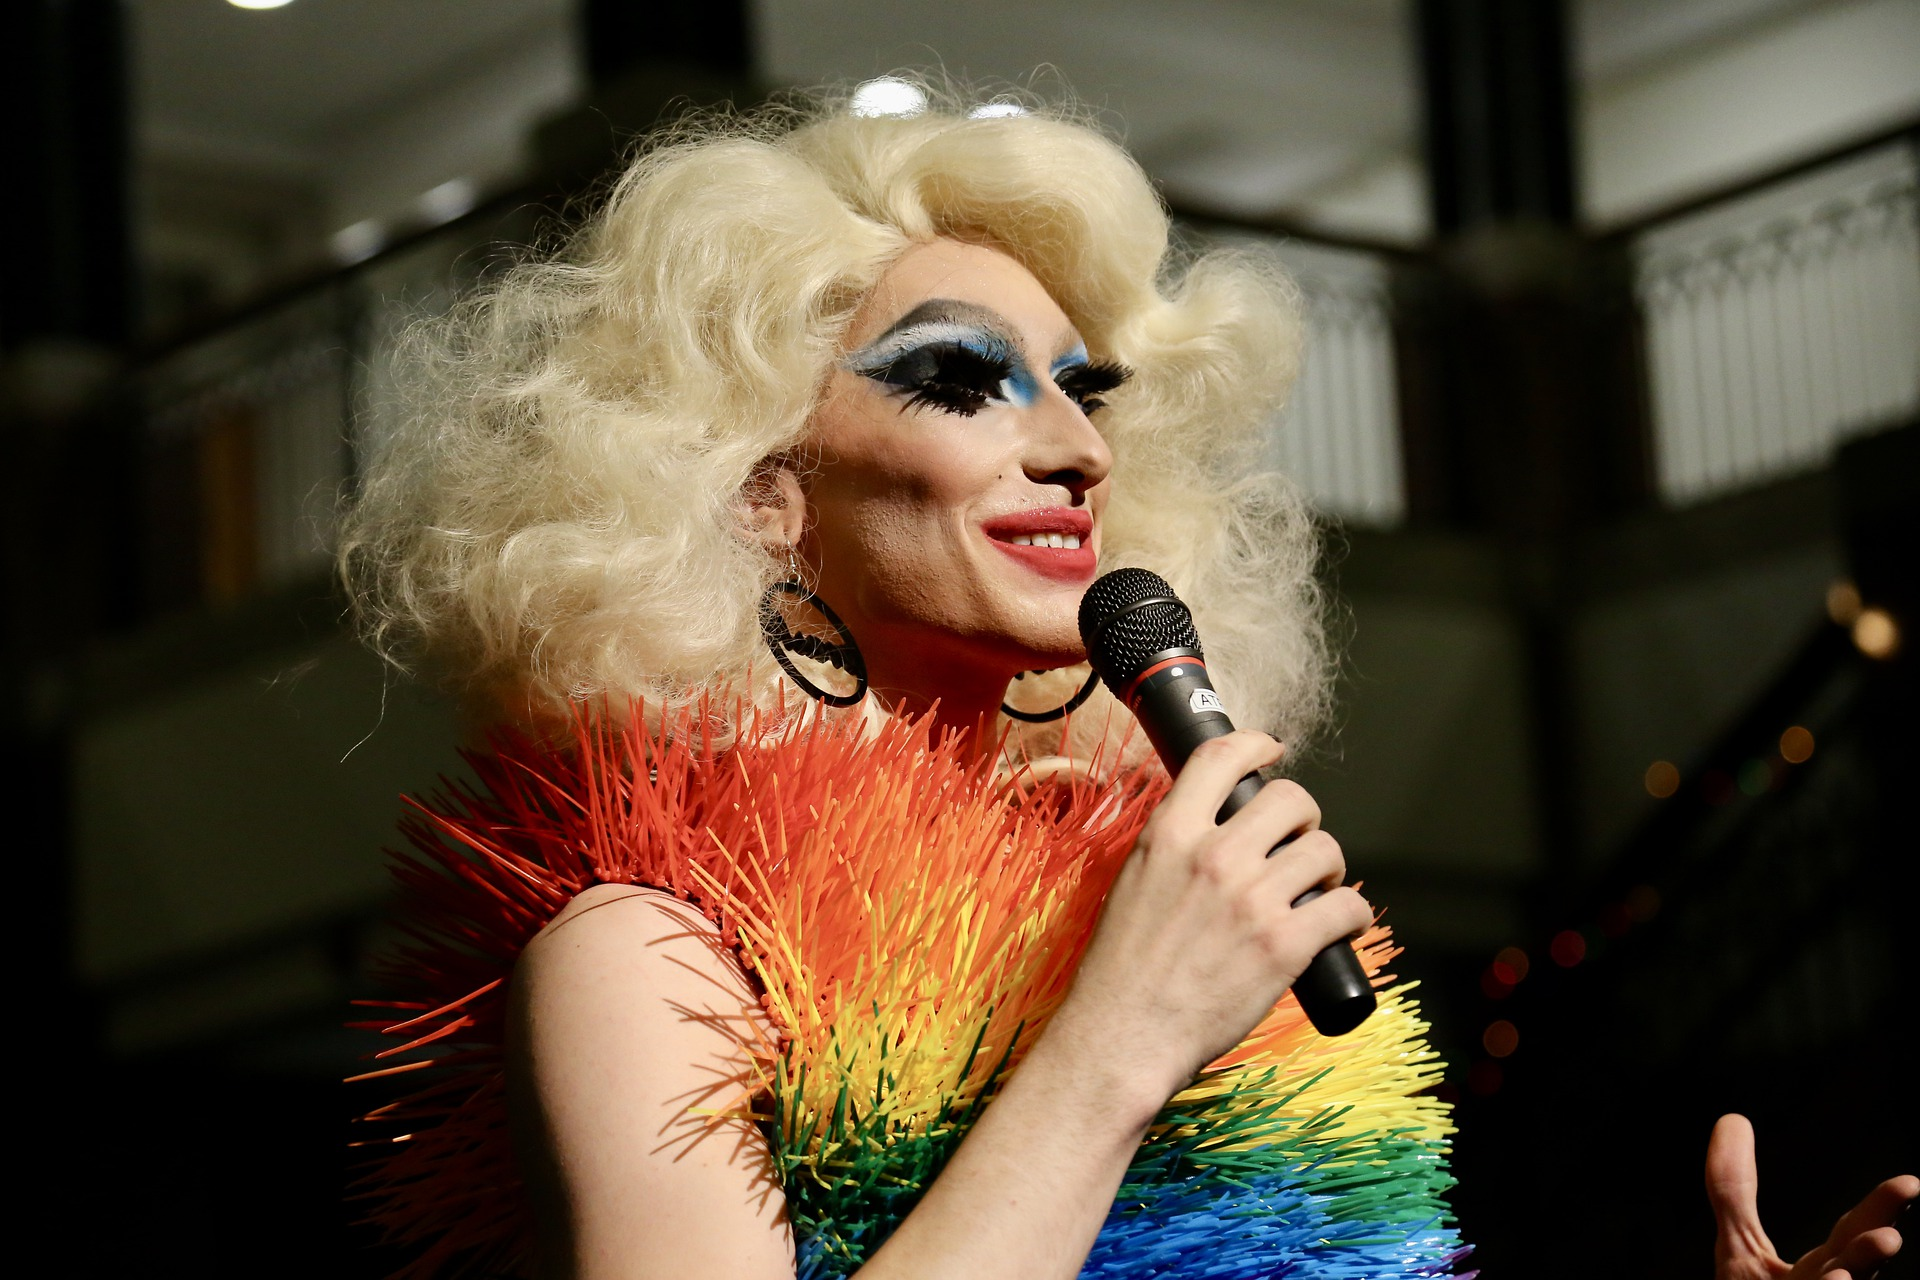 A drag queen speaking at an LGBTQ+ event.